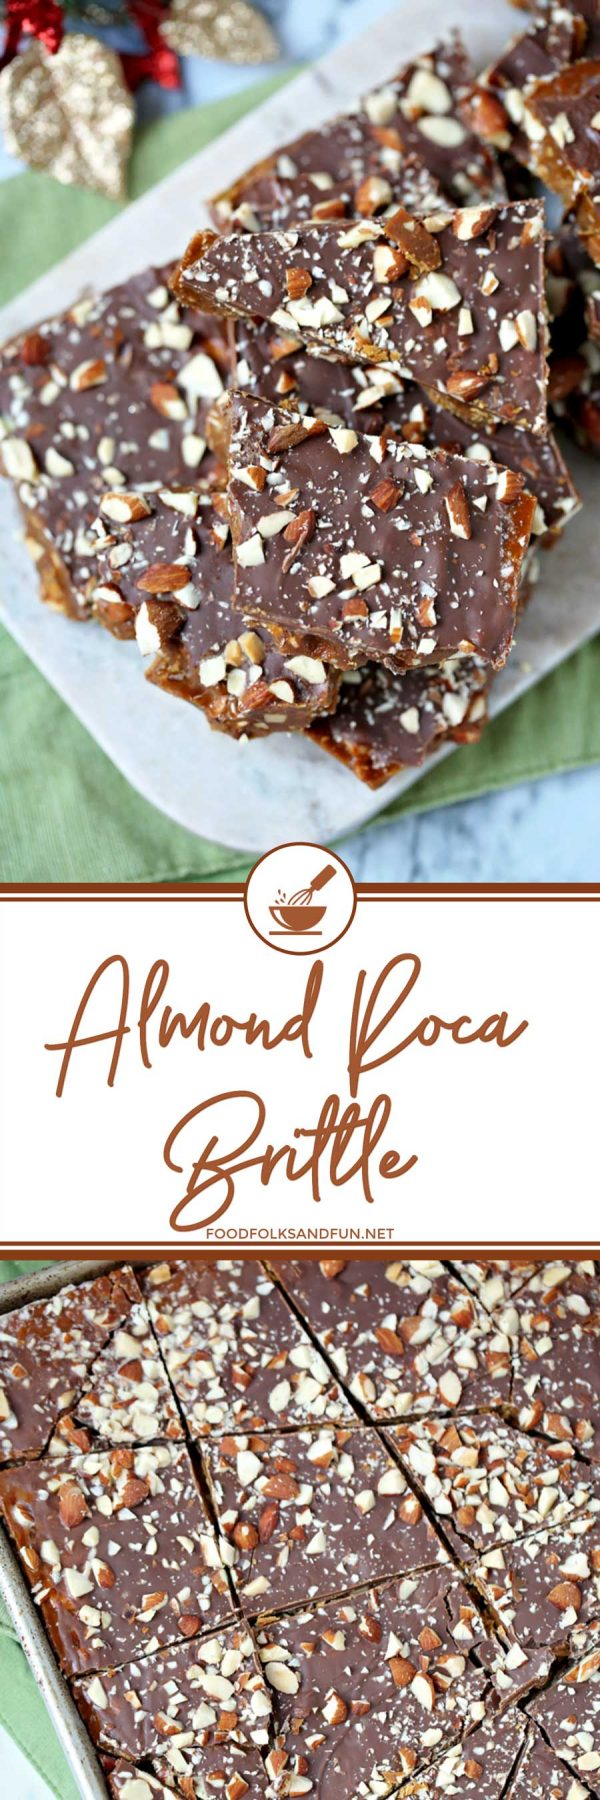 This Almond Roca Brittle is the stuff your crispy, buttery dreams are made of! This is my most requested Christmas recipe EVER, and I made pounds and pounds of it every year!